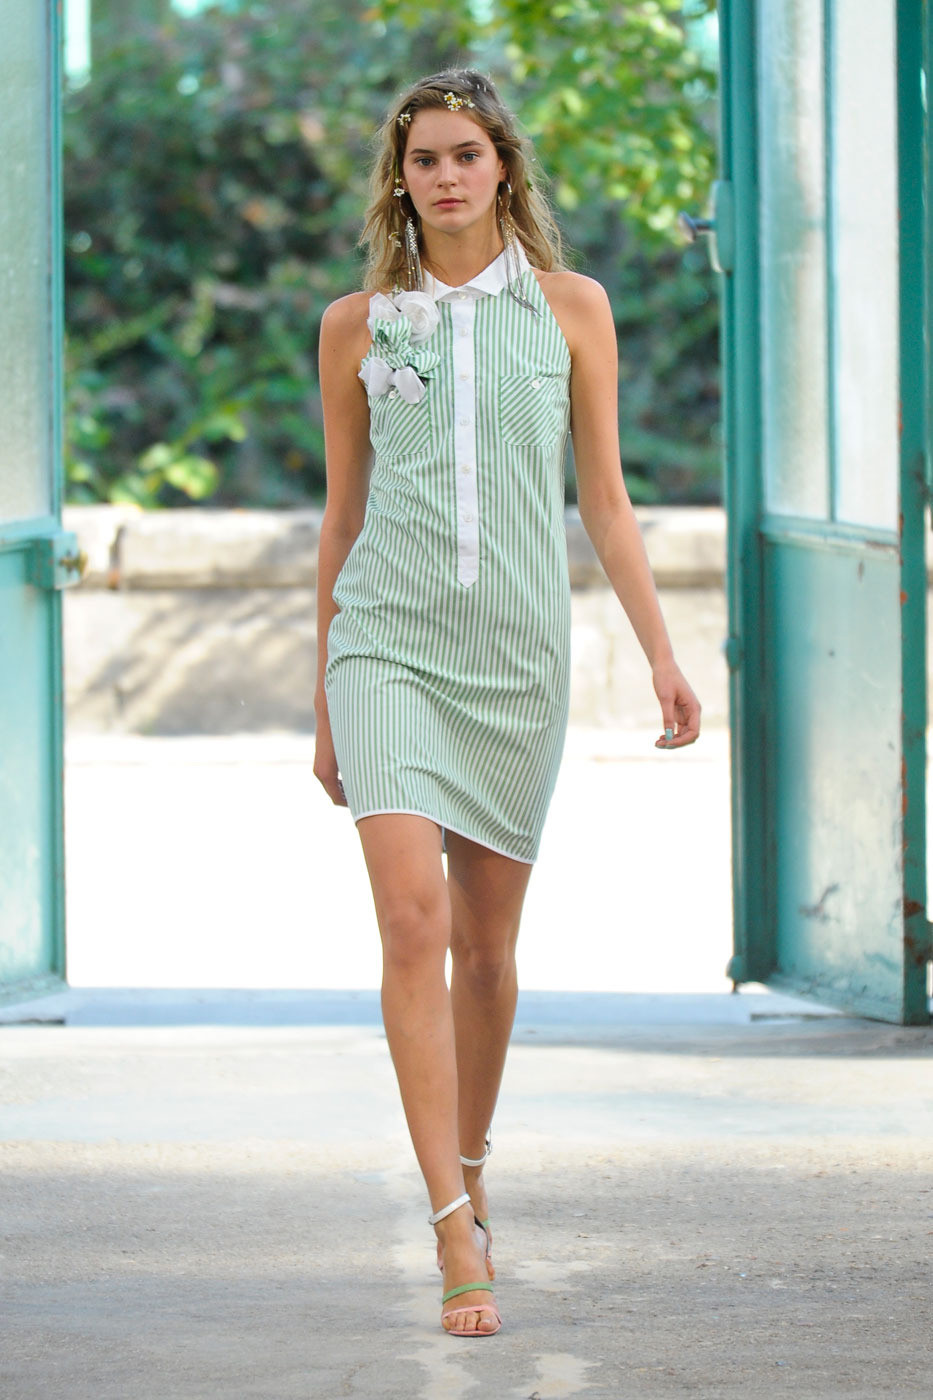 Alexis Mabille Spring 2012 KFYk I 0 vw 1 Acx